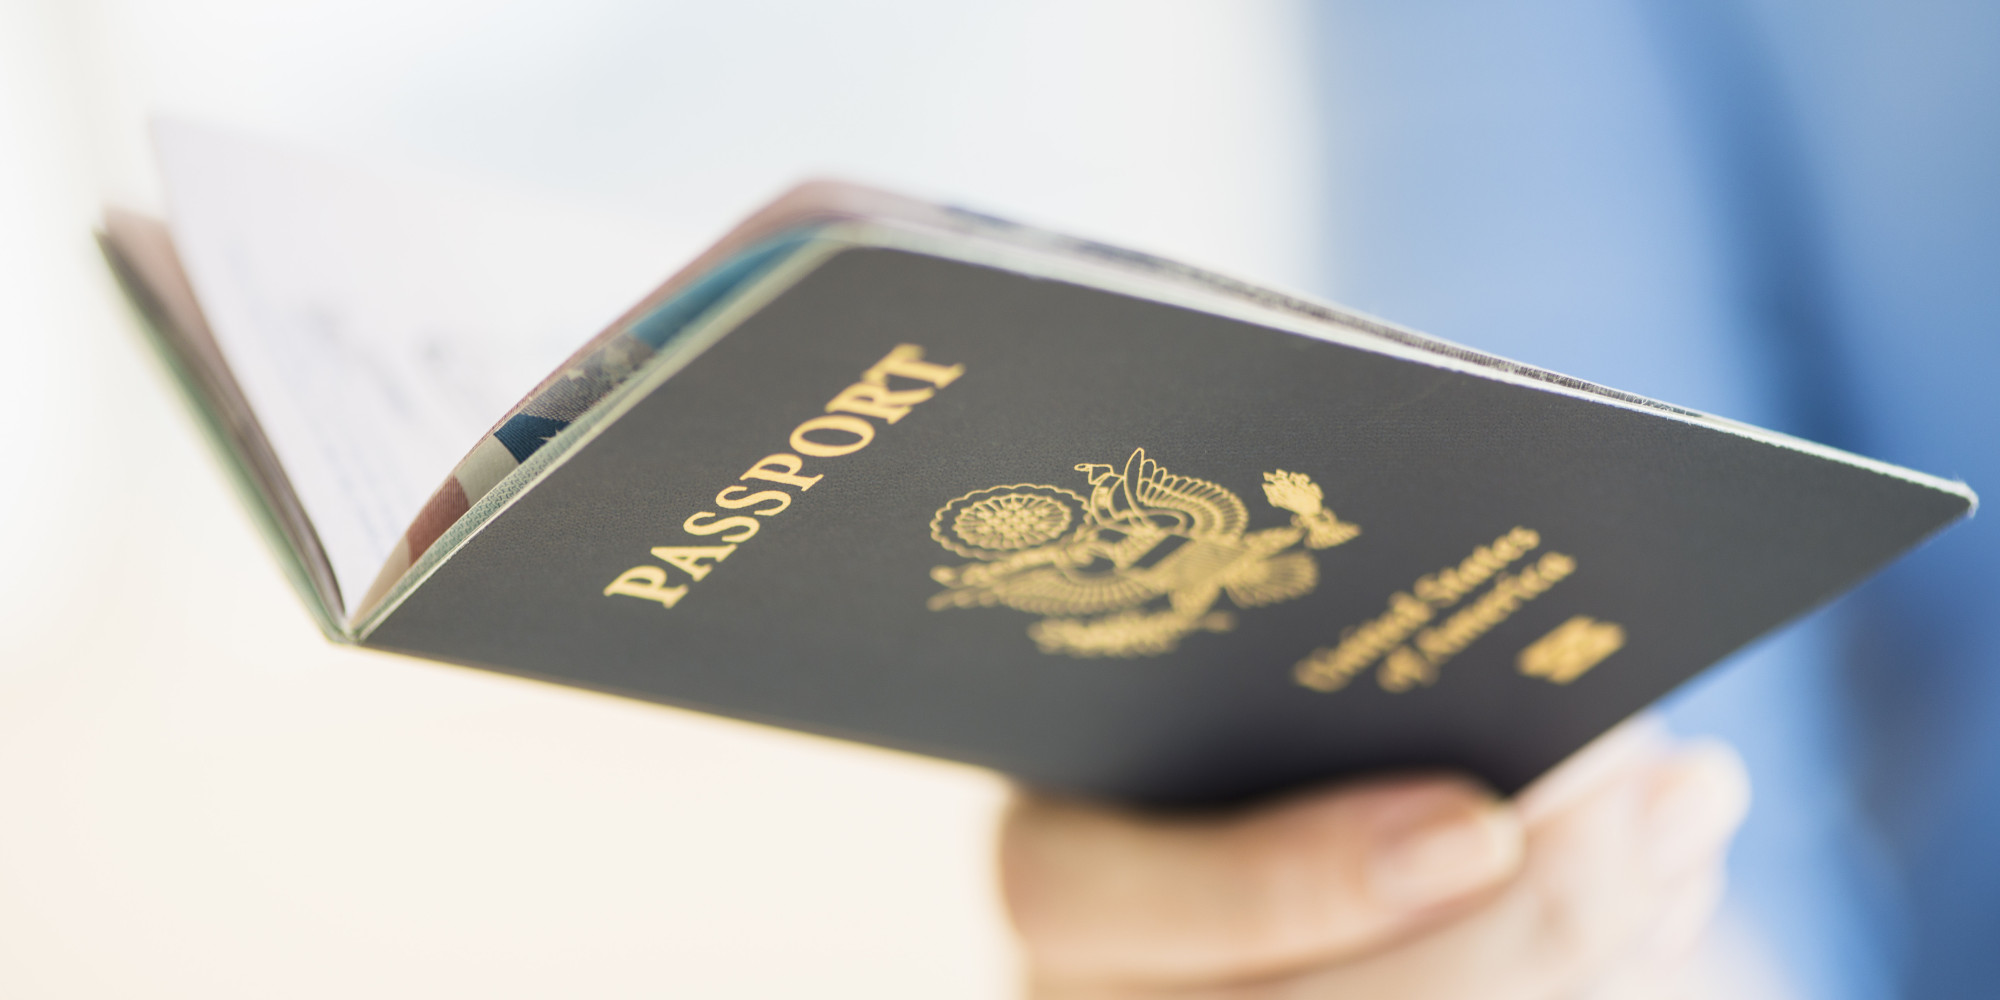 US Passport and fees for giving it up